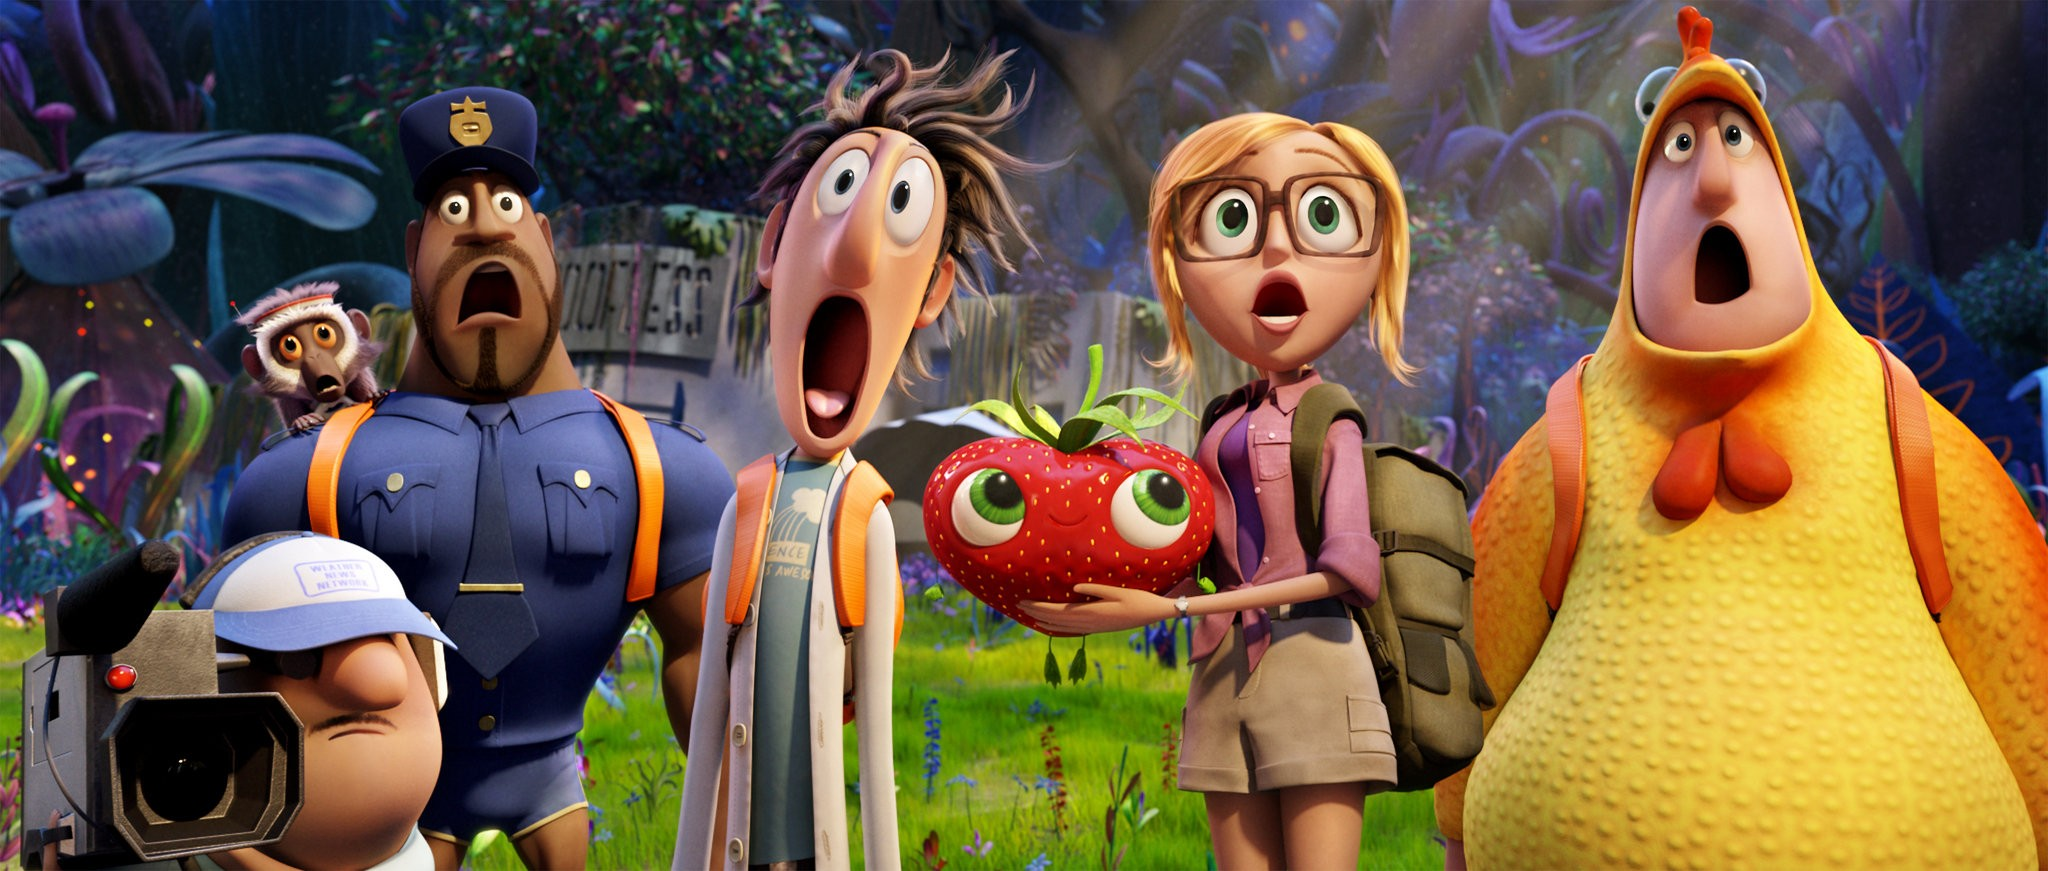 Cloudy With A Chance Of Meatballs 2 Gorgeous Visuals Cheesy Puns Pennlive Com